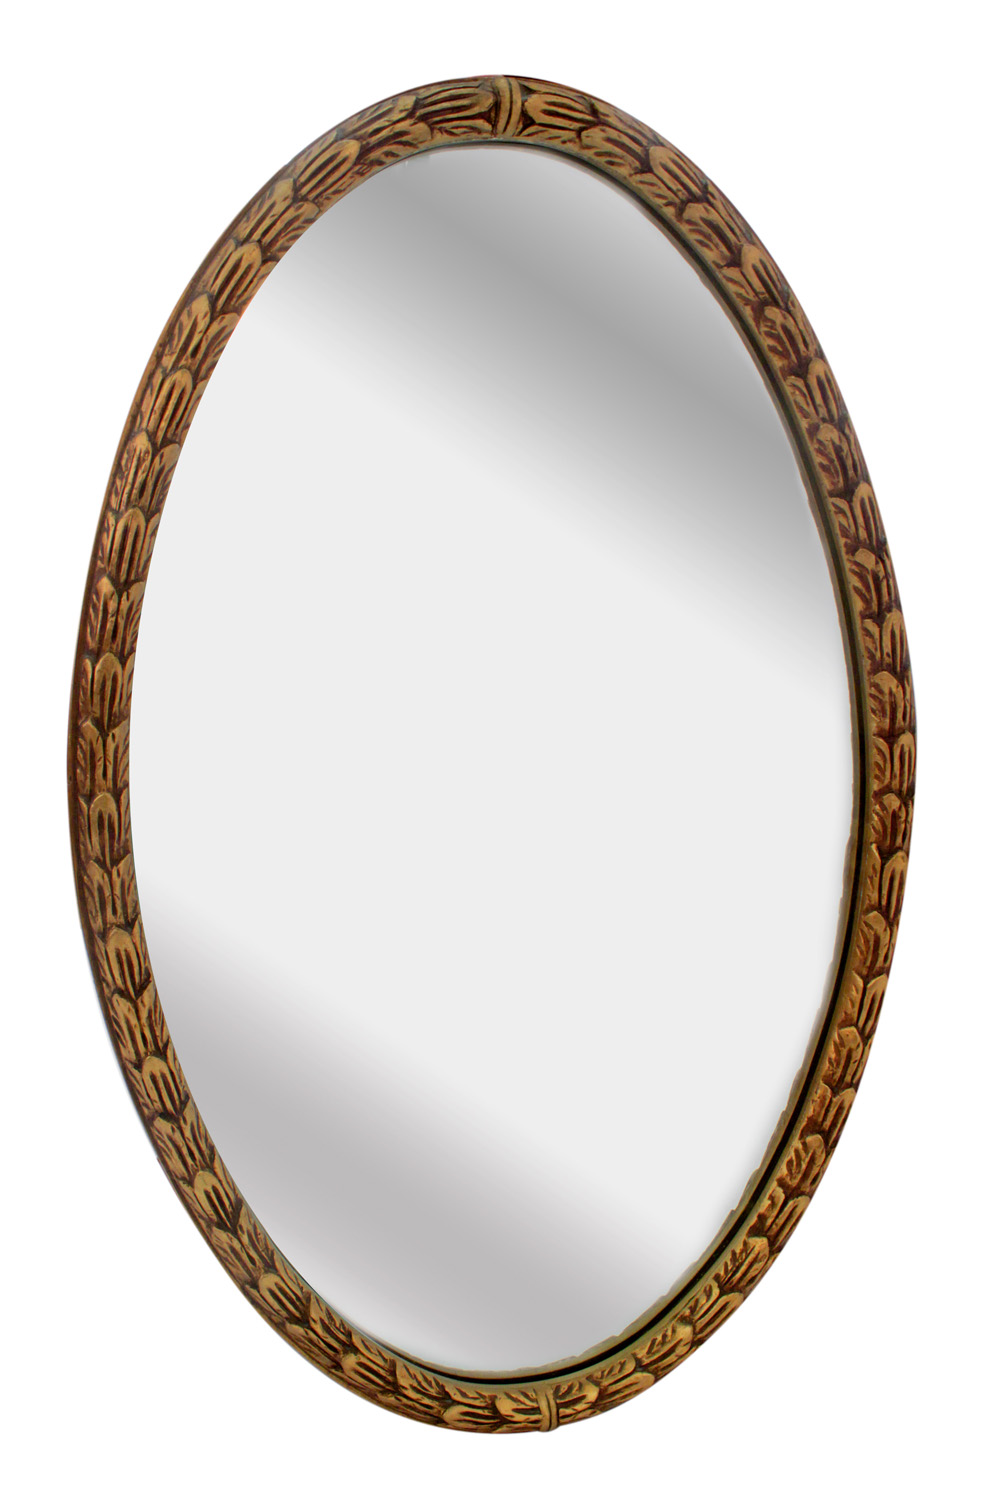 50s 38 carved gilded oval mirror178 hires.jpg